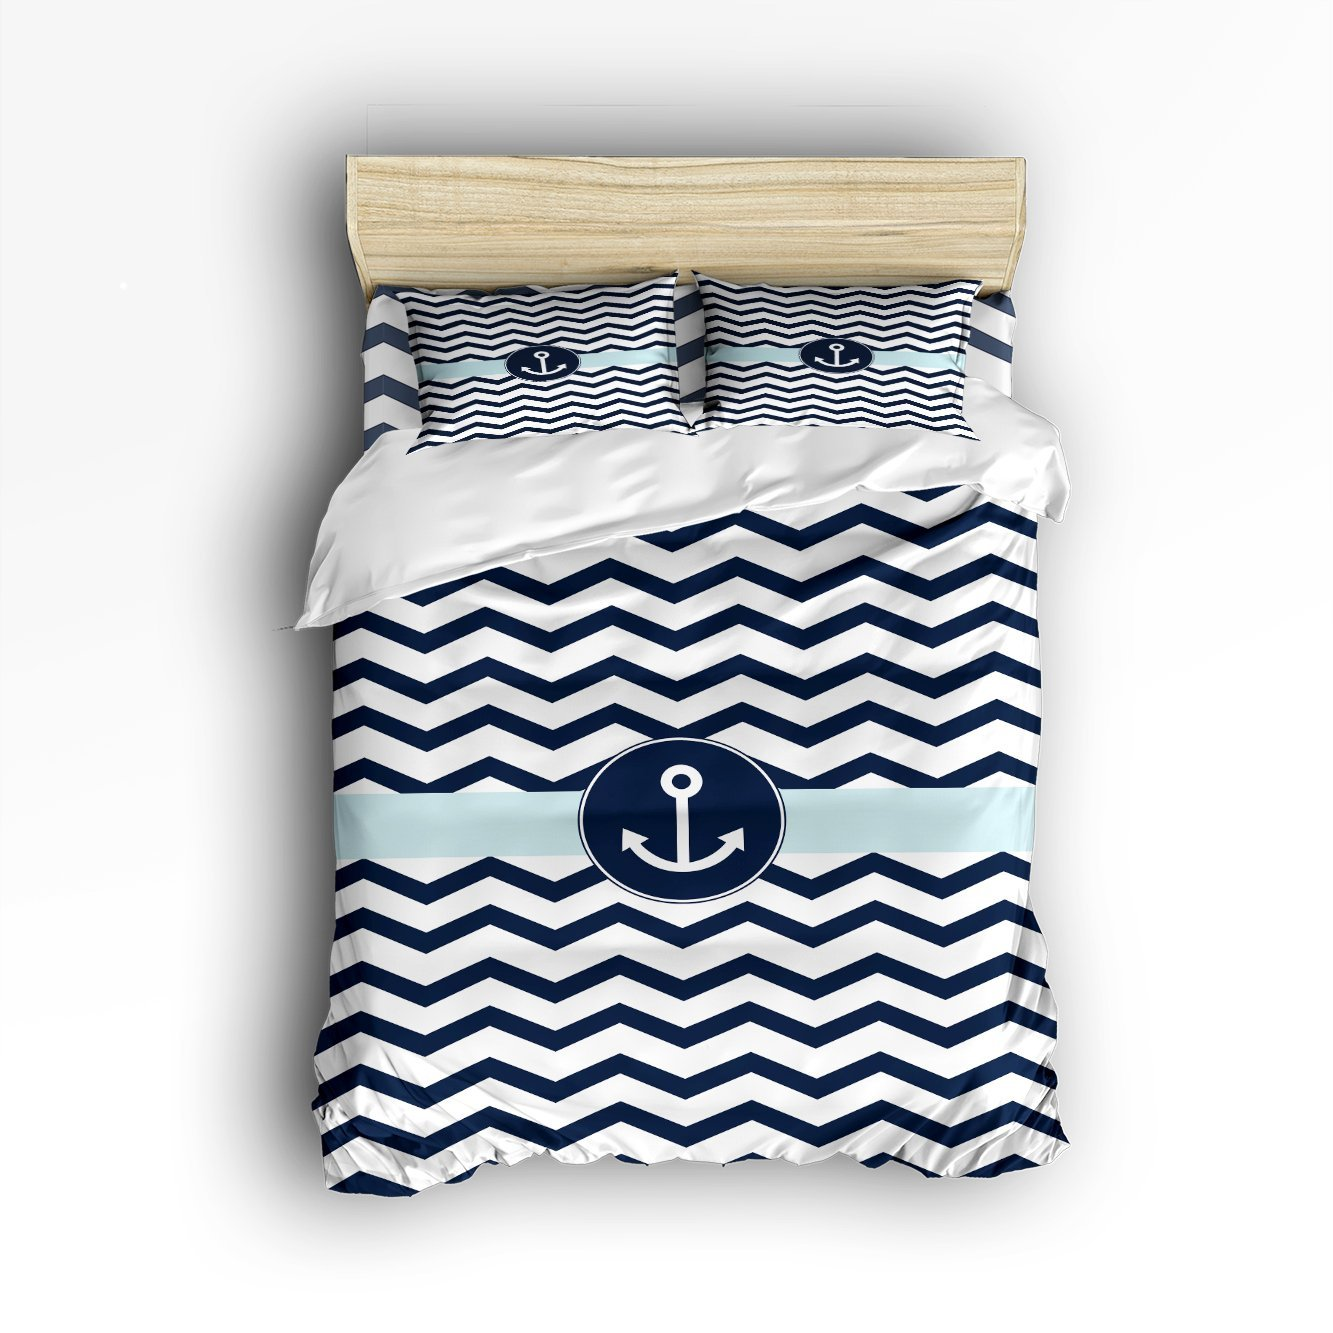 Queen Size Bedding Set Navy Blue Chevron With Nautical